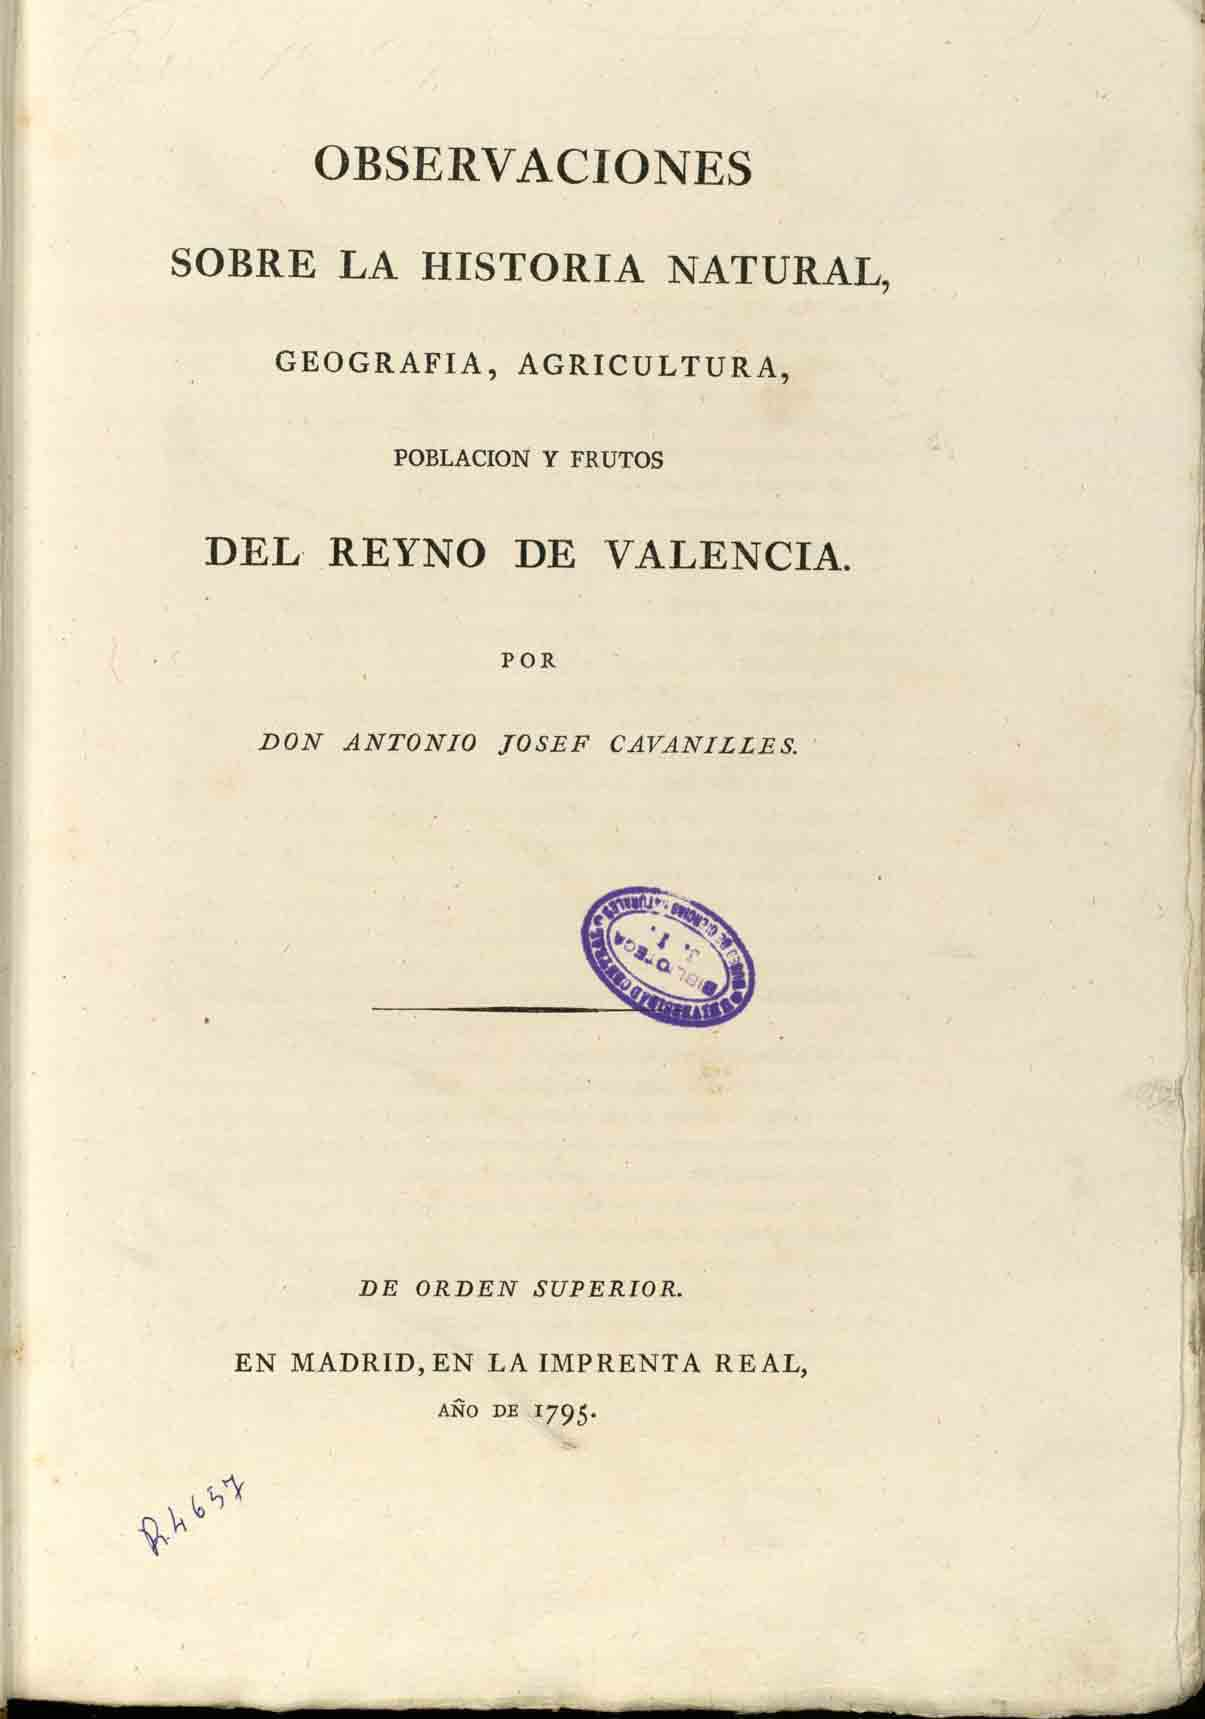 Cavanilles Book on Natural History